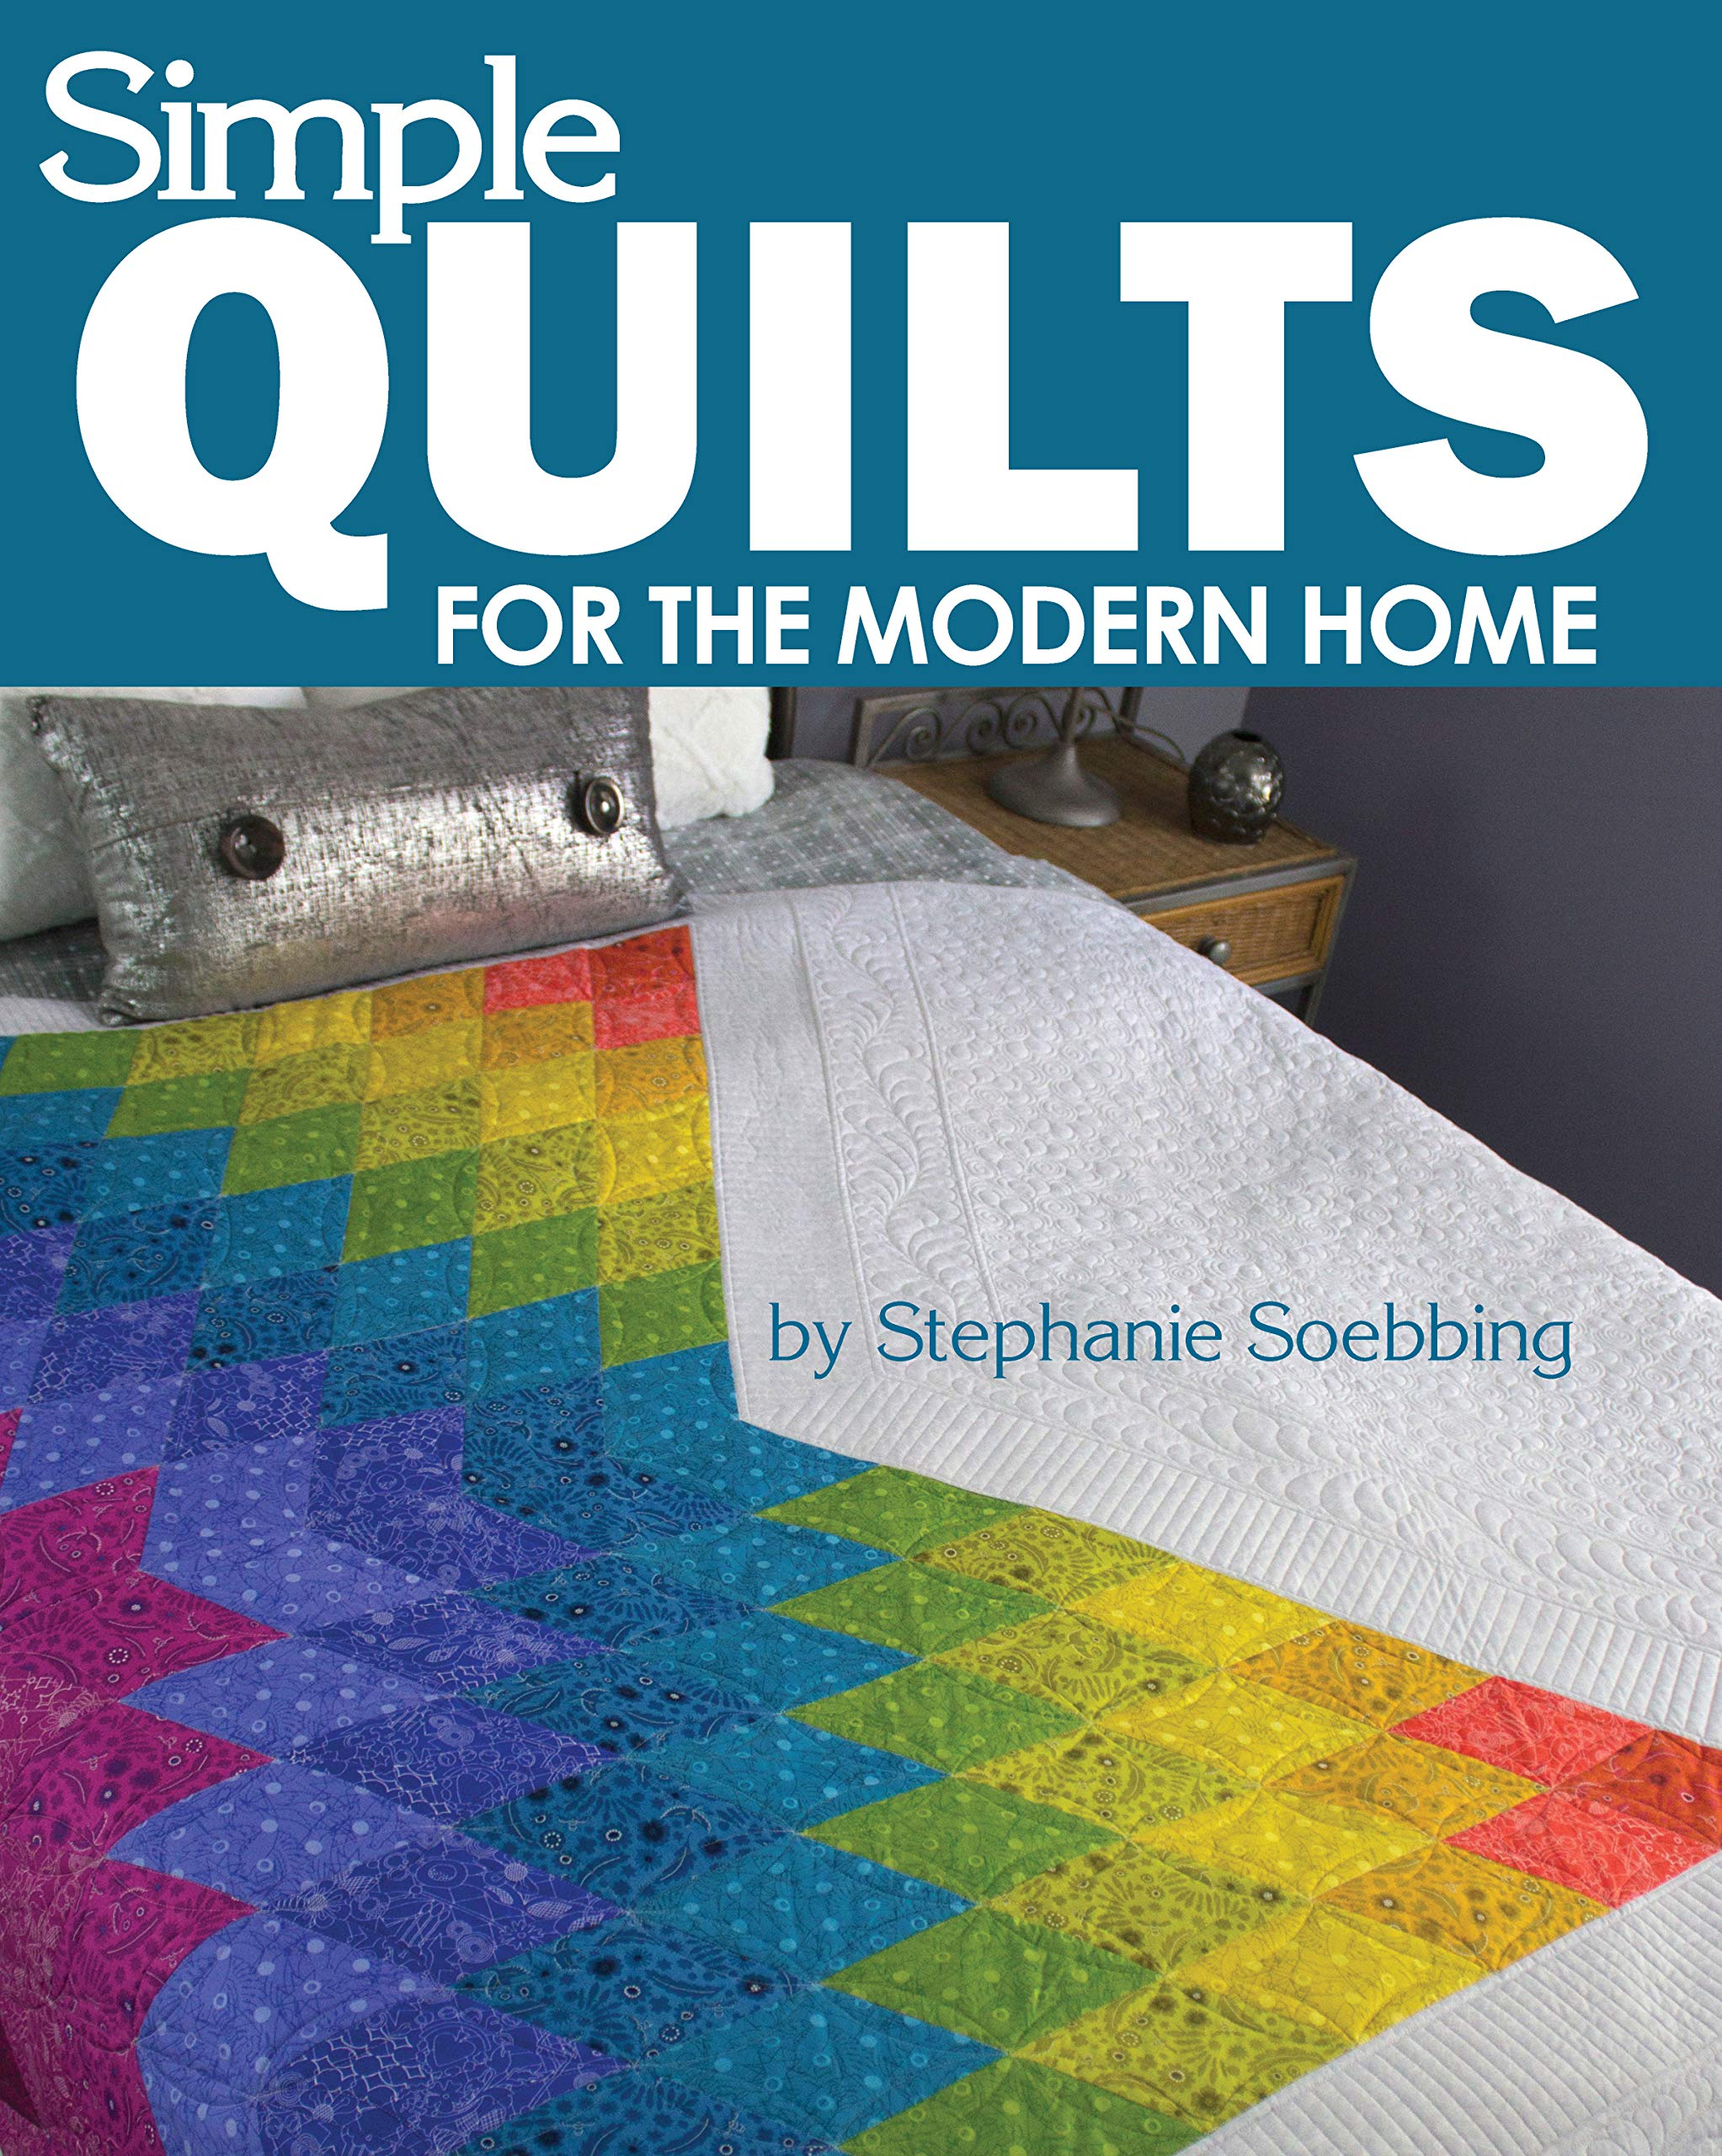 Simple Quilts For The Modern Home Landauer 12 Beginner Friendly Skill Building Step By Step Projects From Lap To Full Sized Quilts With Bold Colors High Contrast And Utilizing Negative Space Stephanie Soebbing 9781947163034 Amazon Com Books